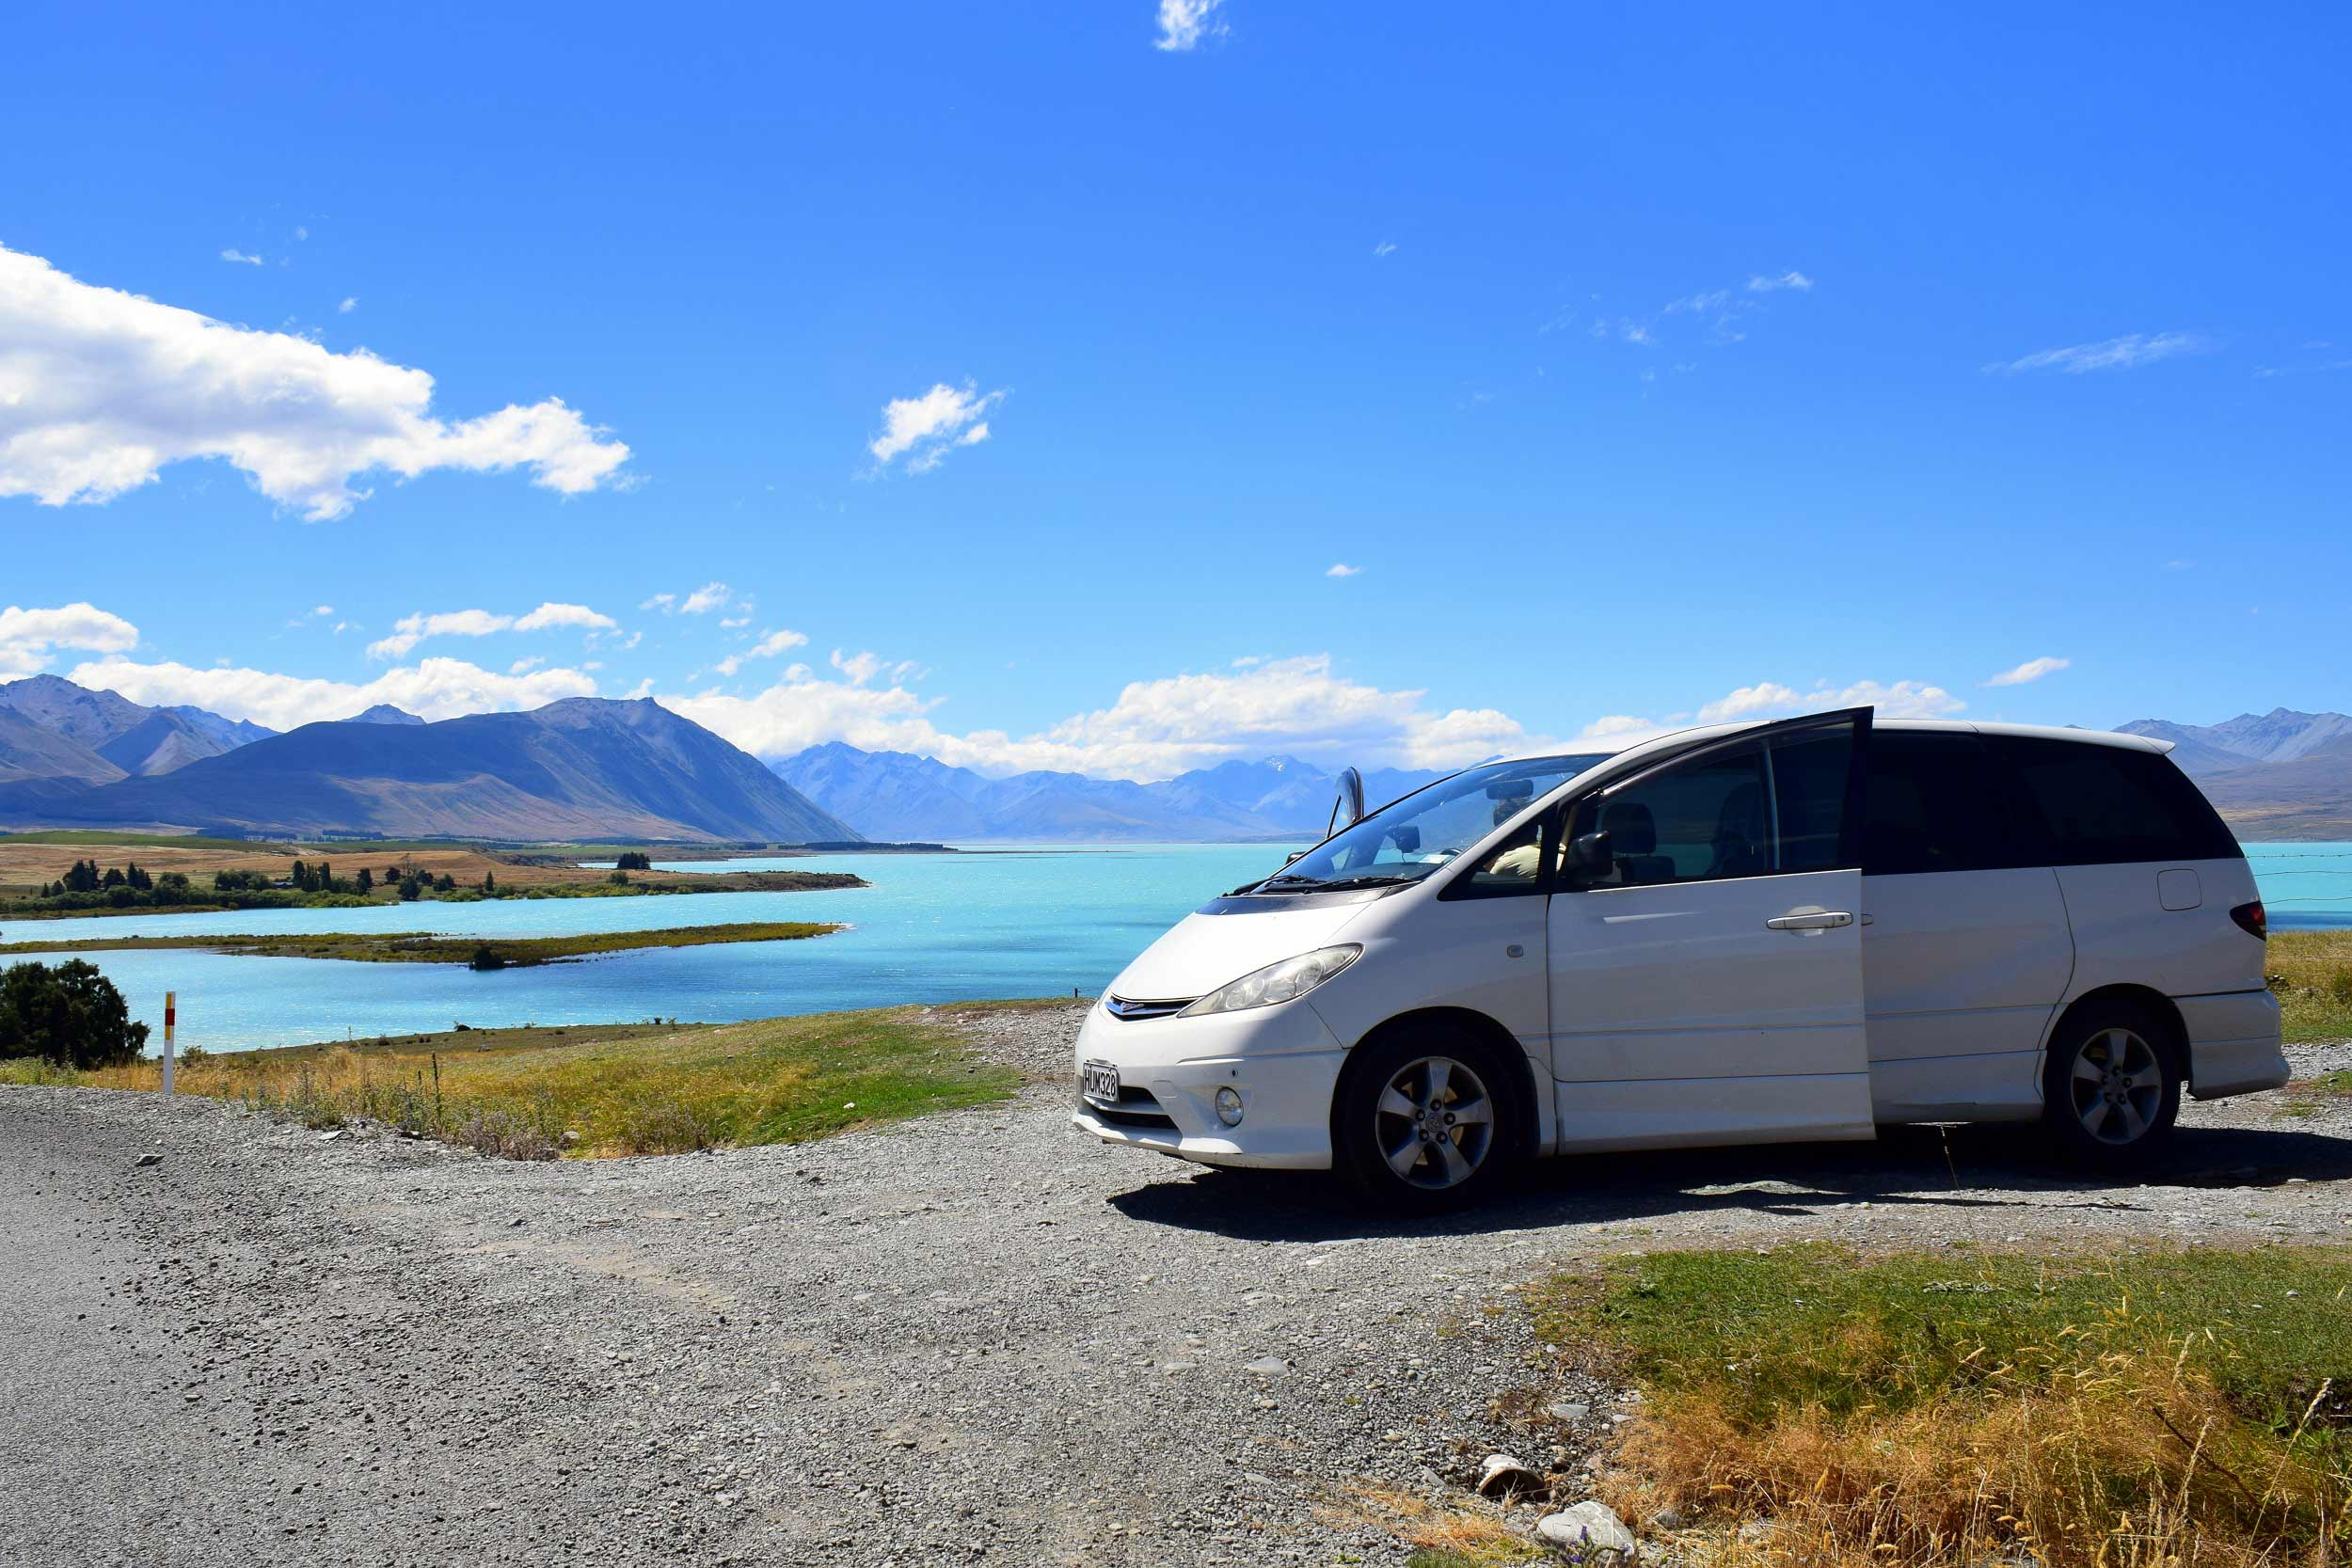 Campervan in front of a lake front overlooking lakes and mountains in New Zealand.